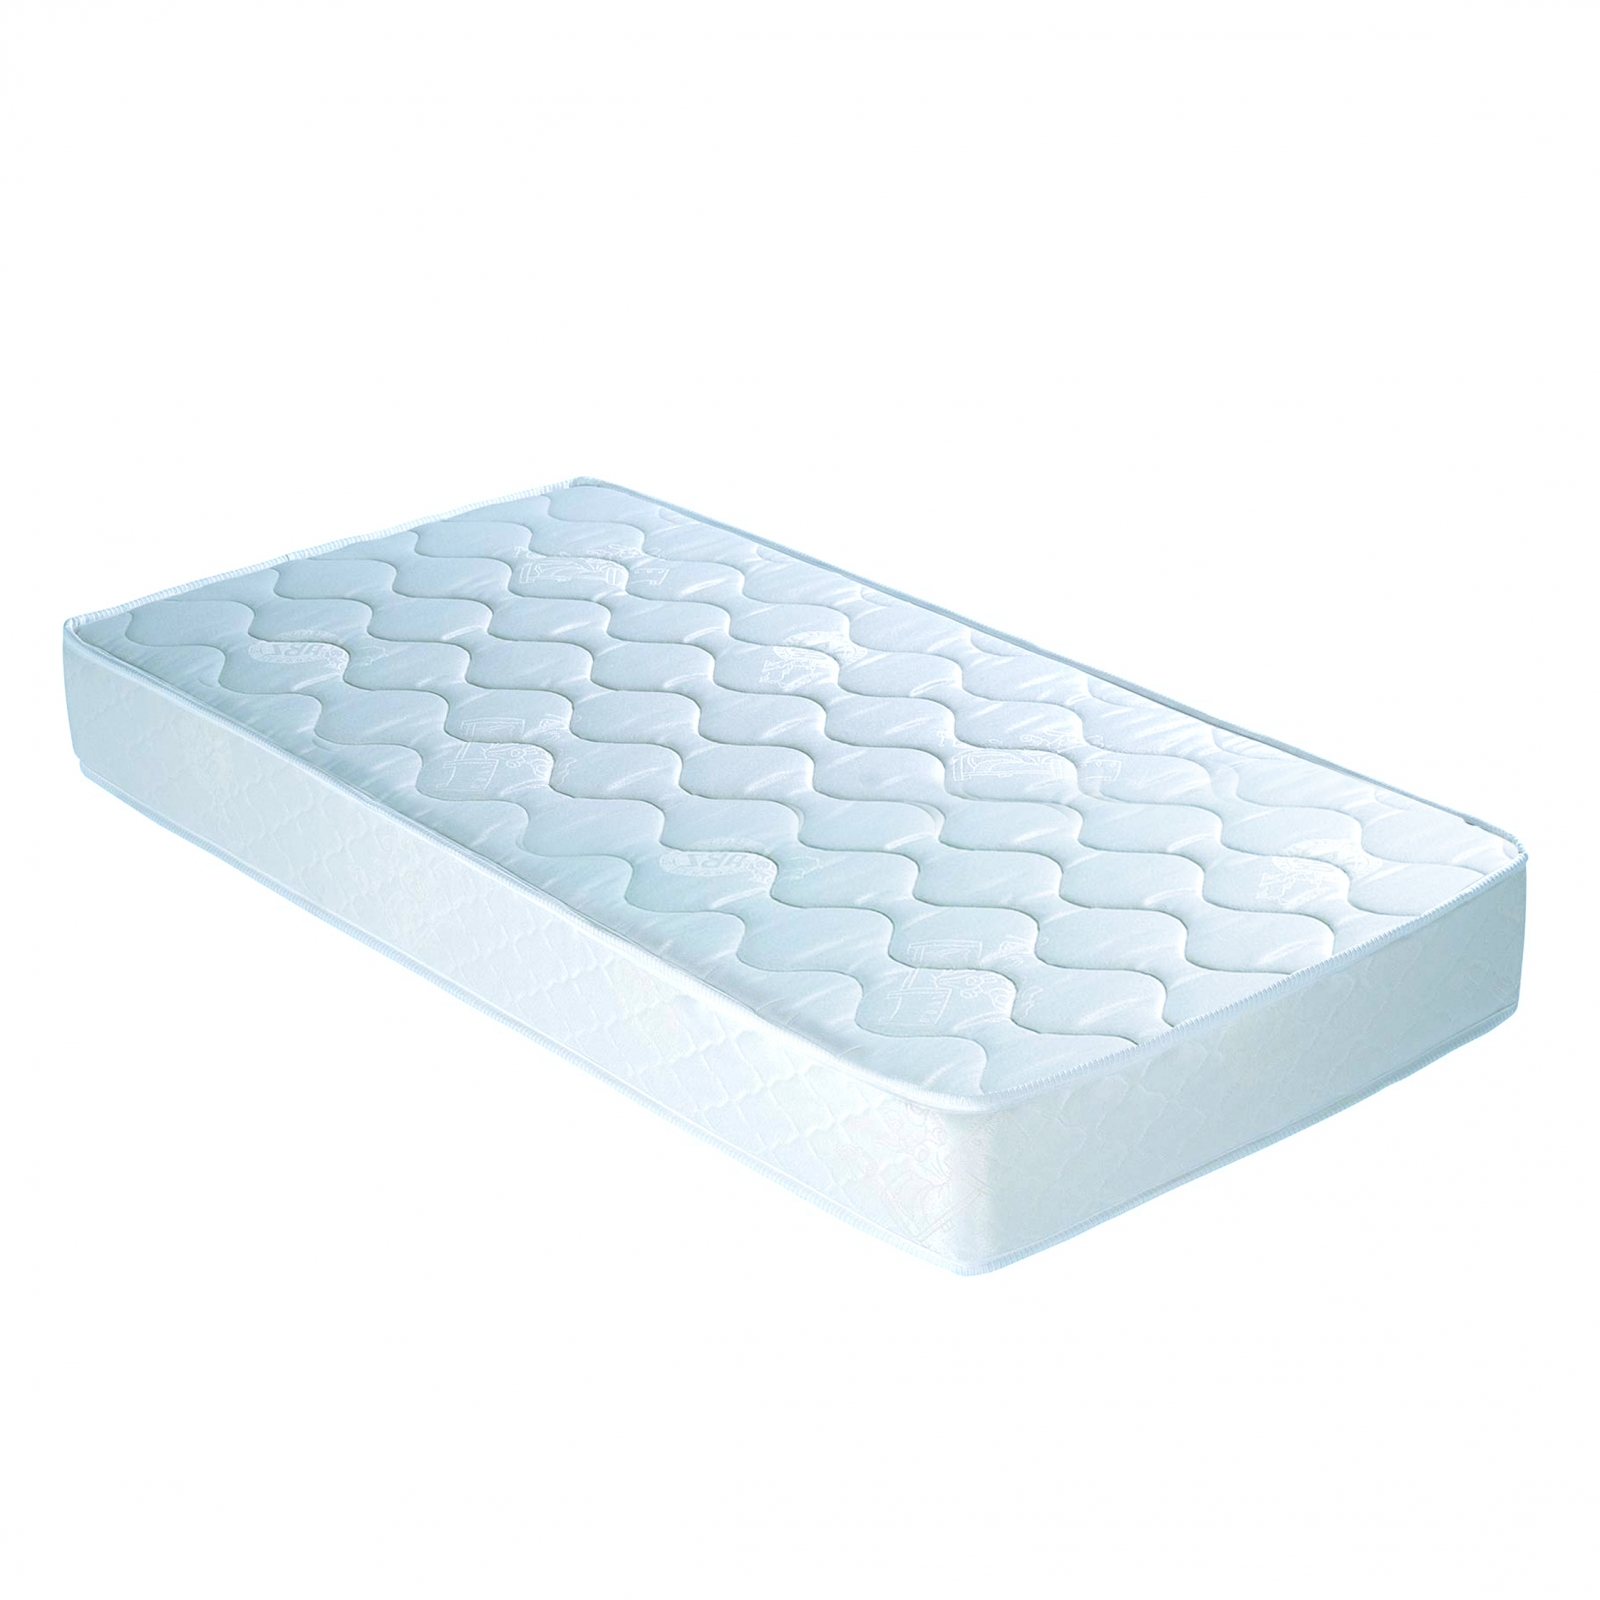 ABZ Mattress Polyether SG25 - KM244 70x150 cm.